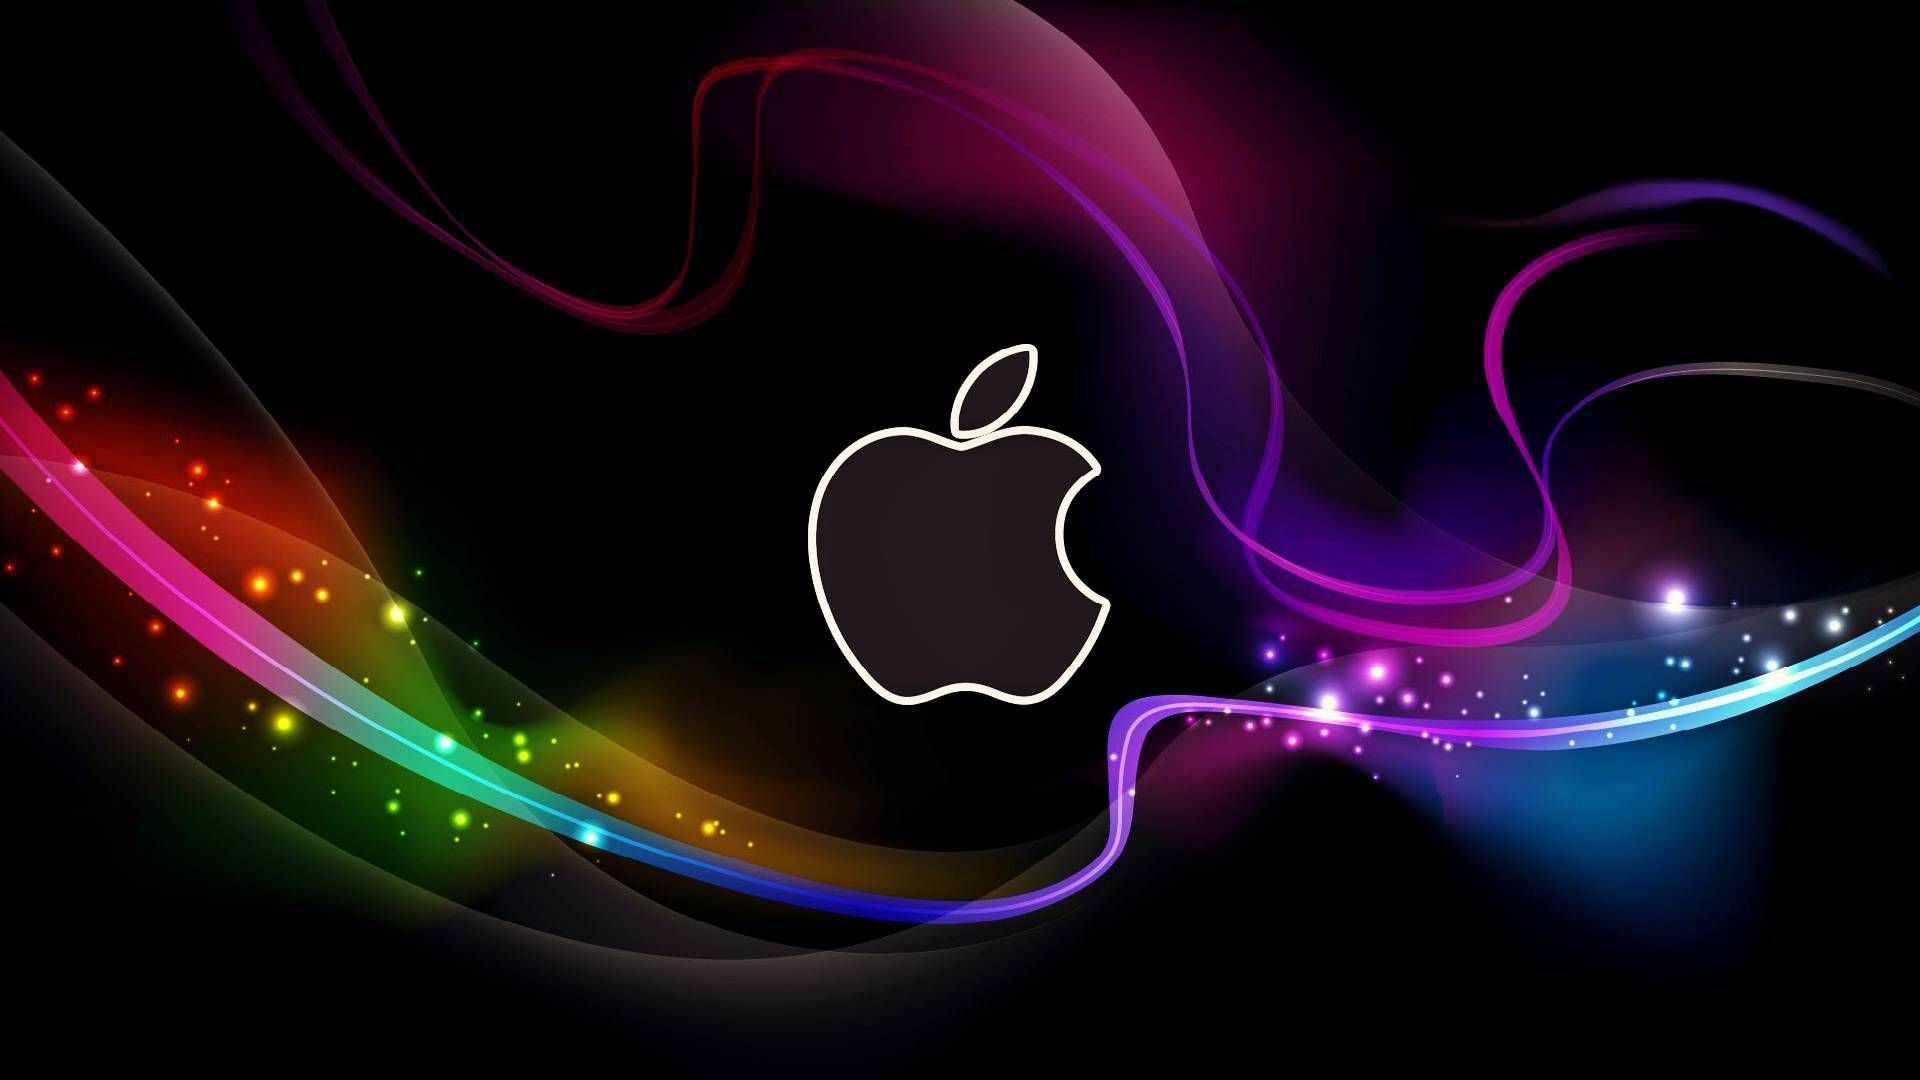 Simple Wallpaper Macbook Background - a362746a231594d5da08f50b798e9f7b  Collection_713621.jpg